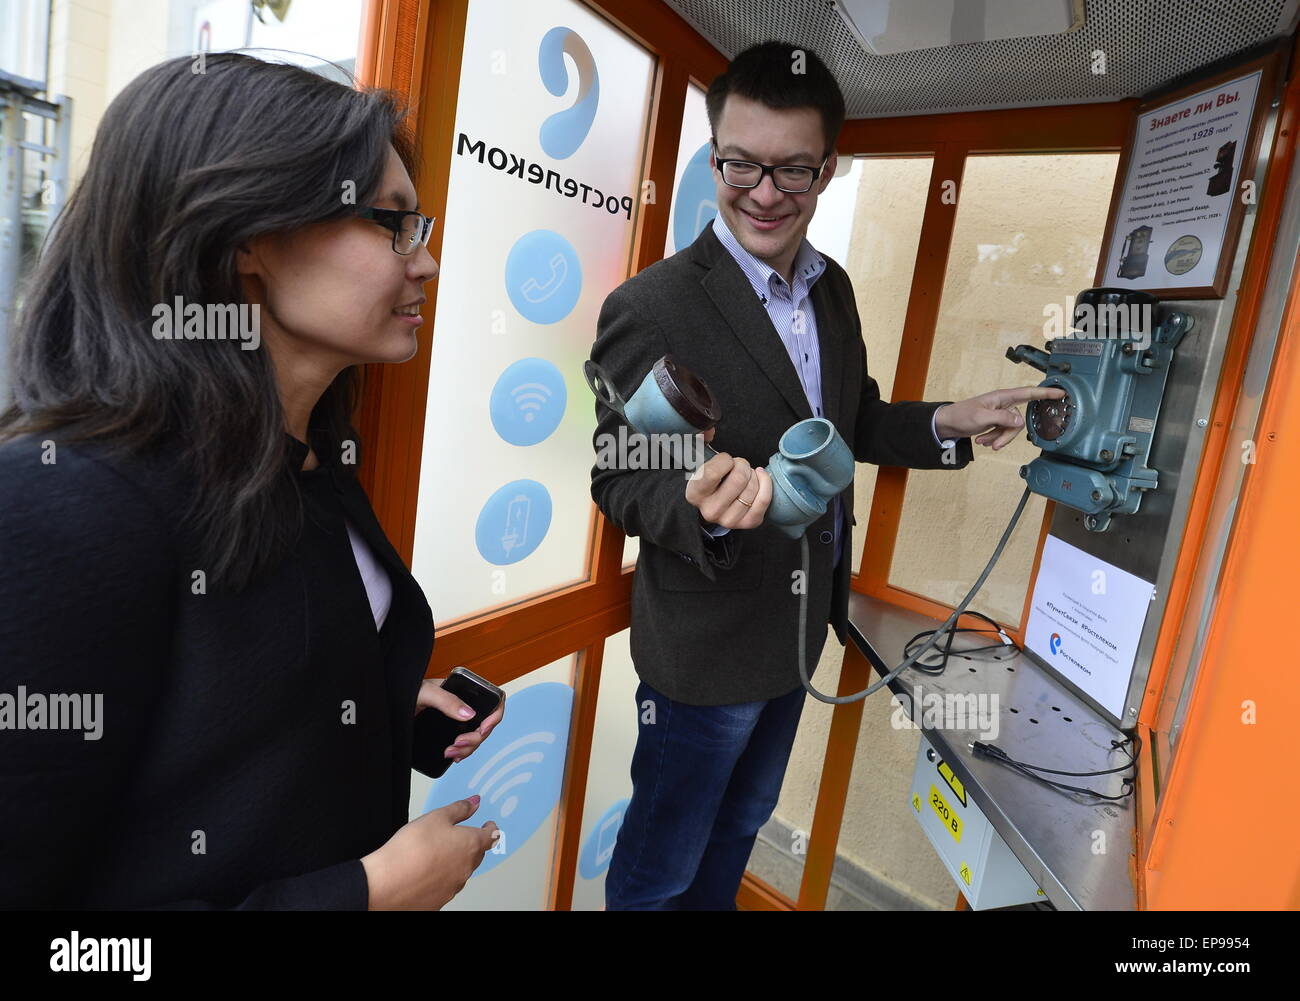 Vladivostok, Russia. 15th May, 2015. Local residents use a multifunctional telephone booth that has been unveiled - Stock Image